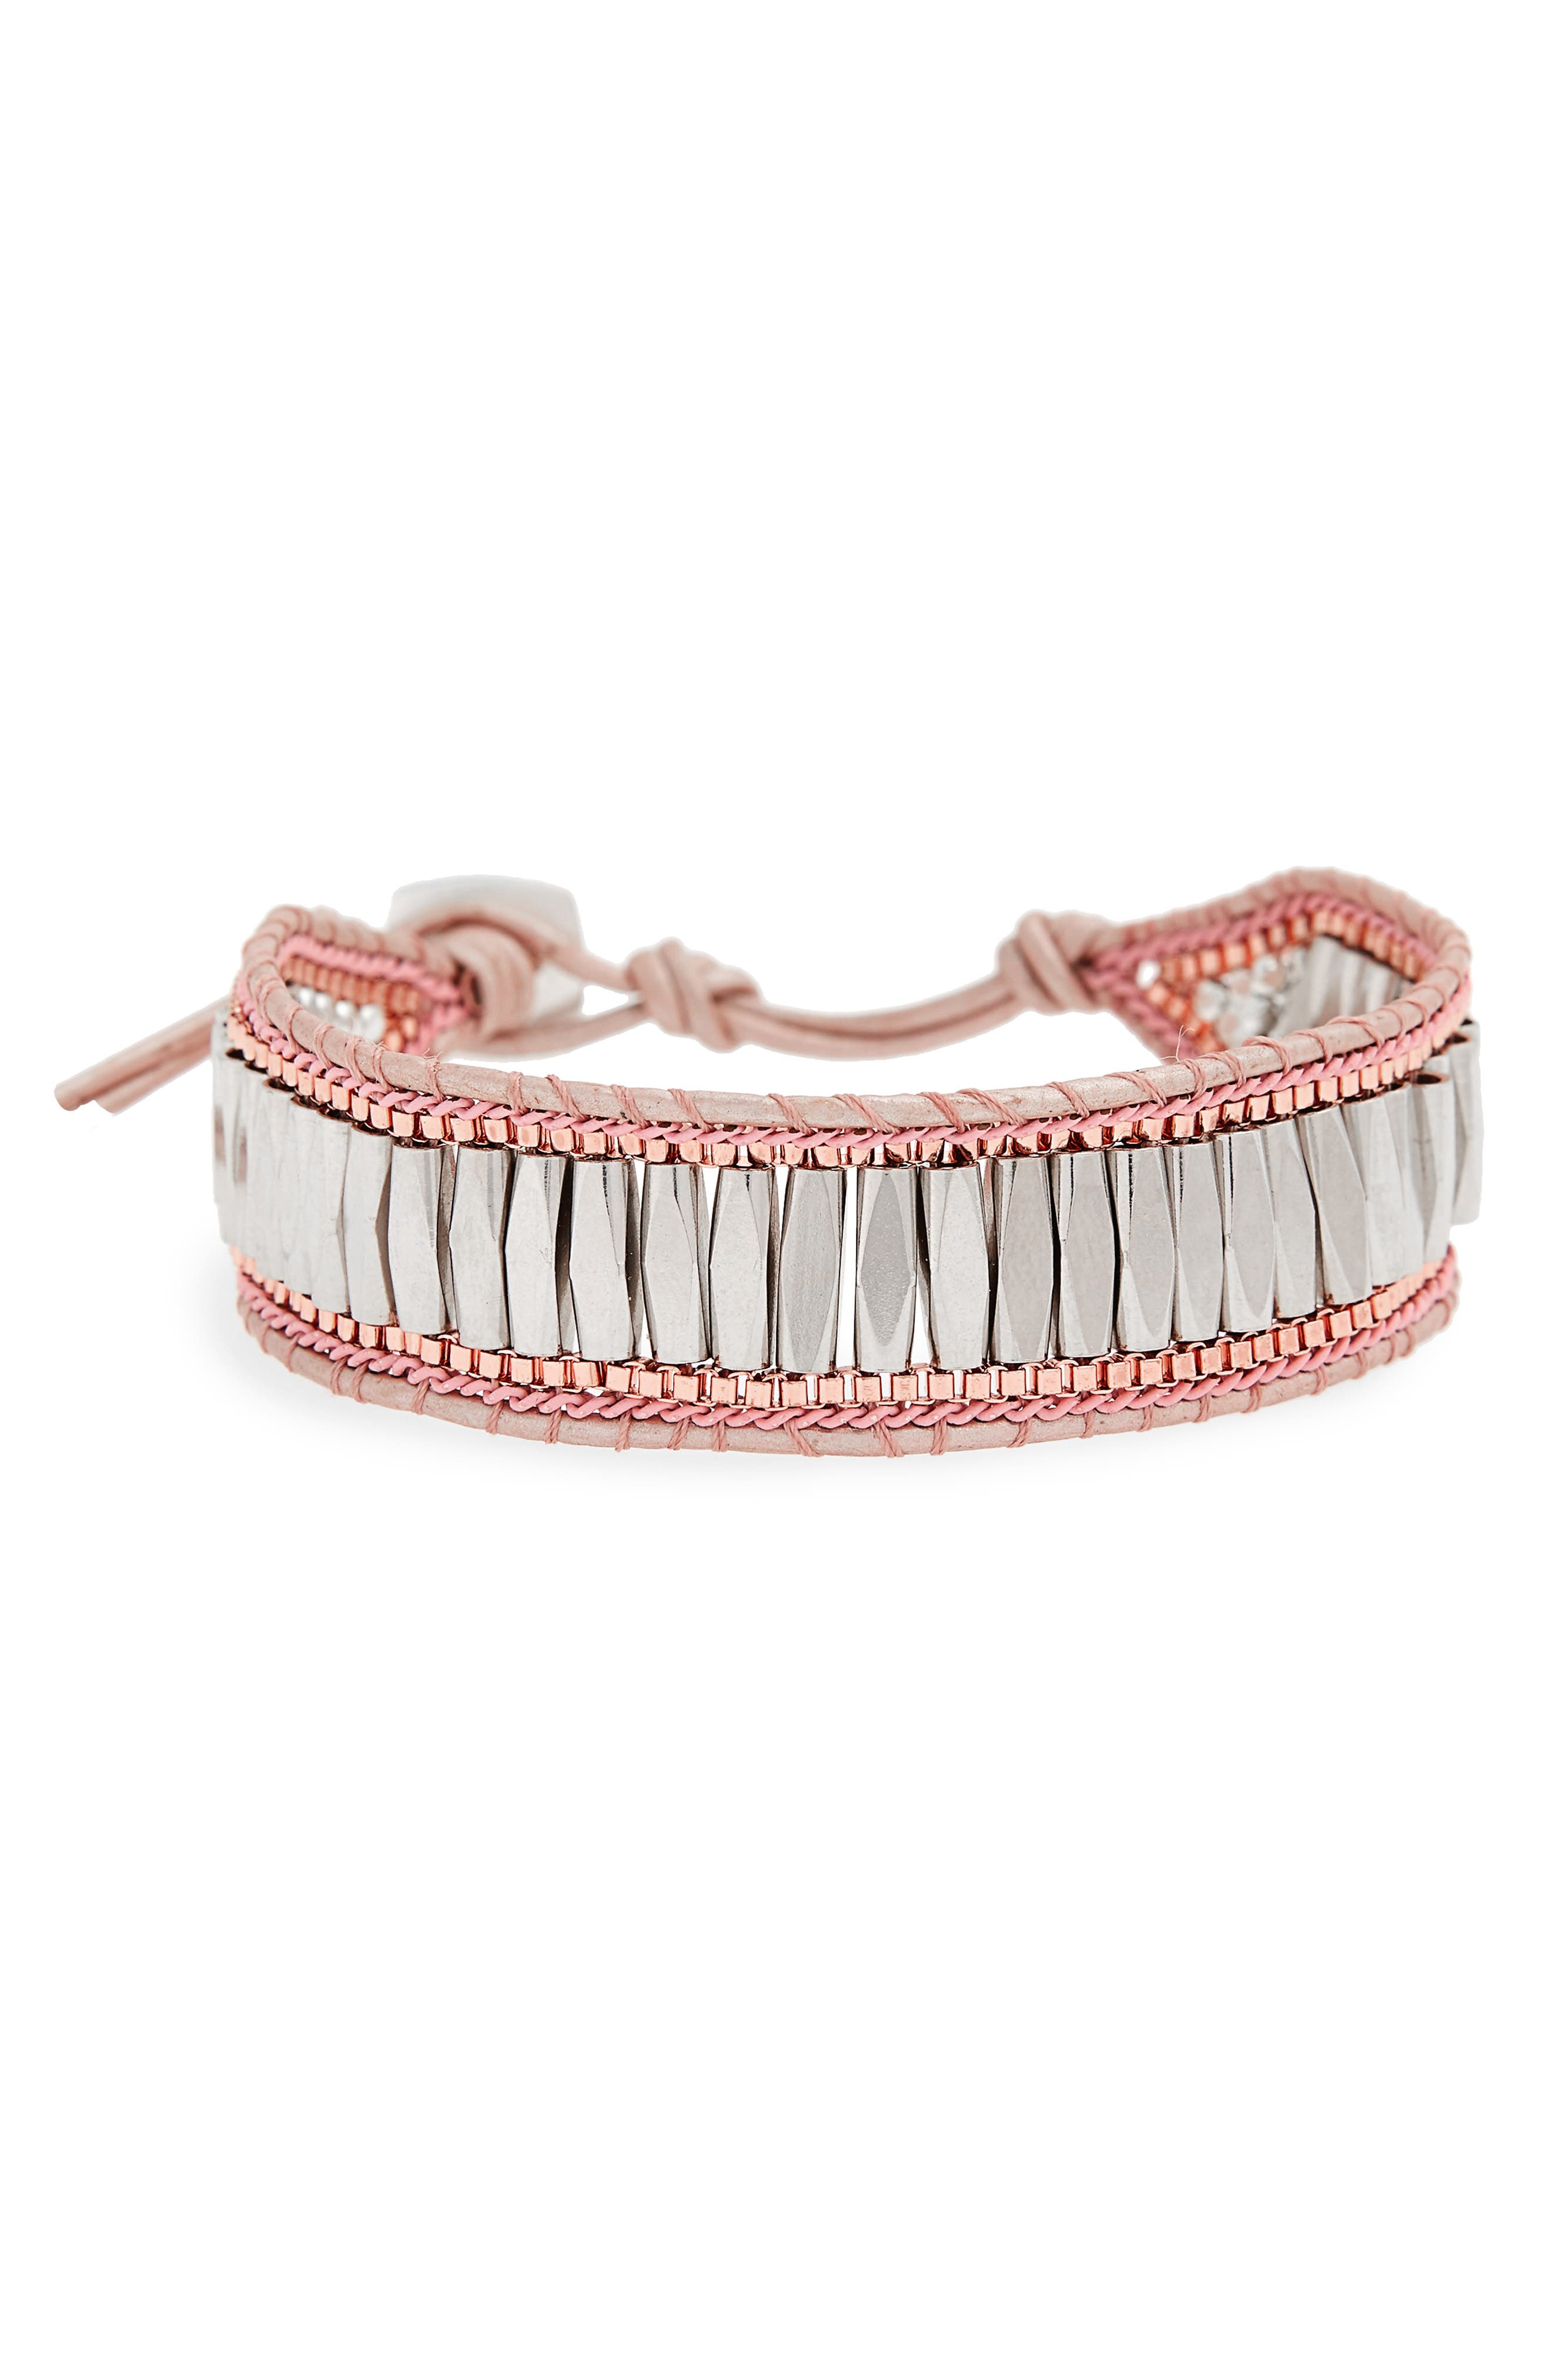 Beaded Leather Bracelet,                         Main,                         color, 650